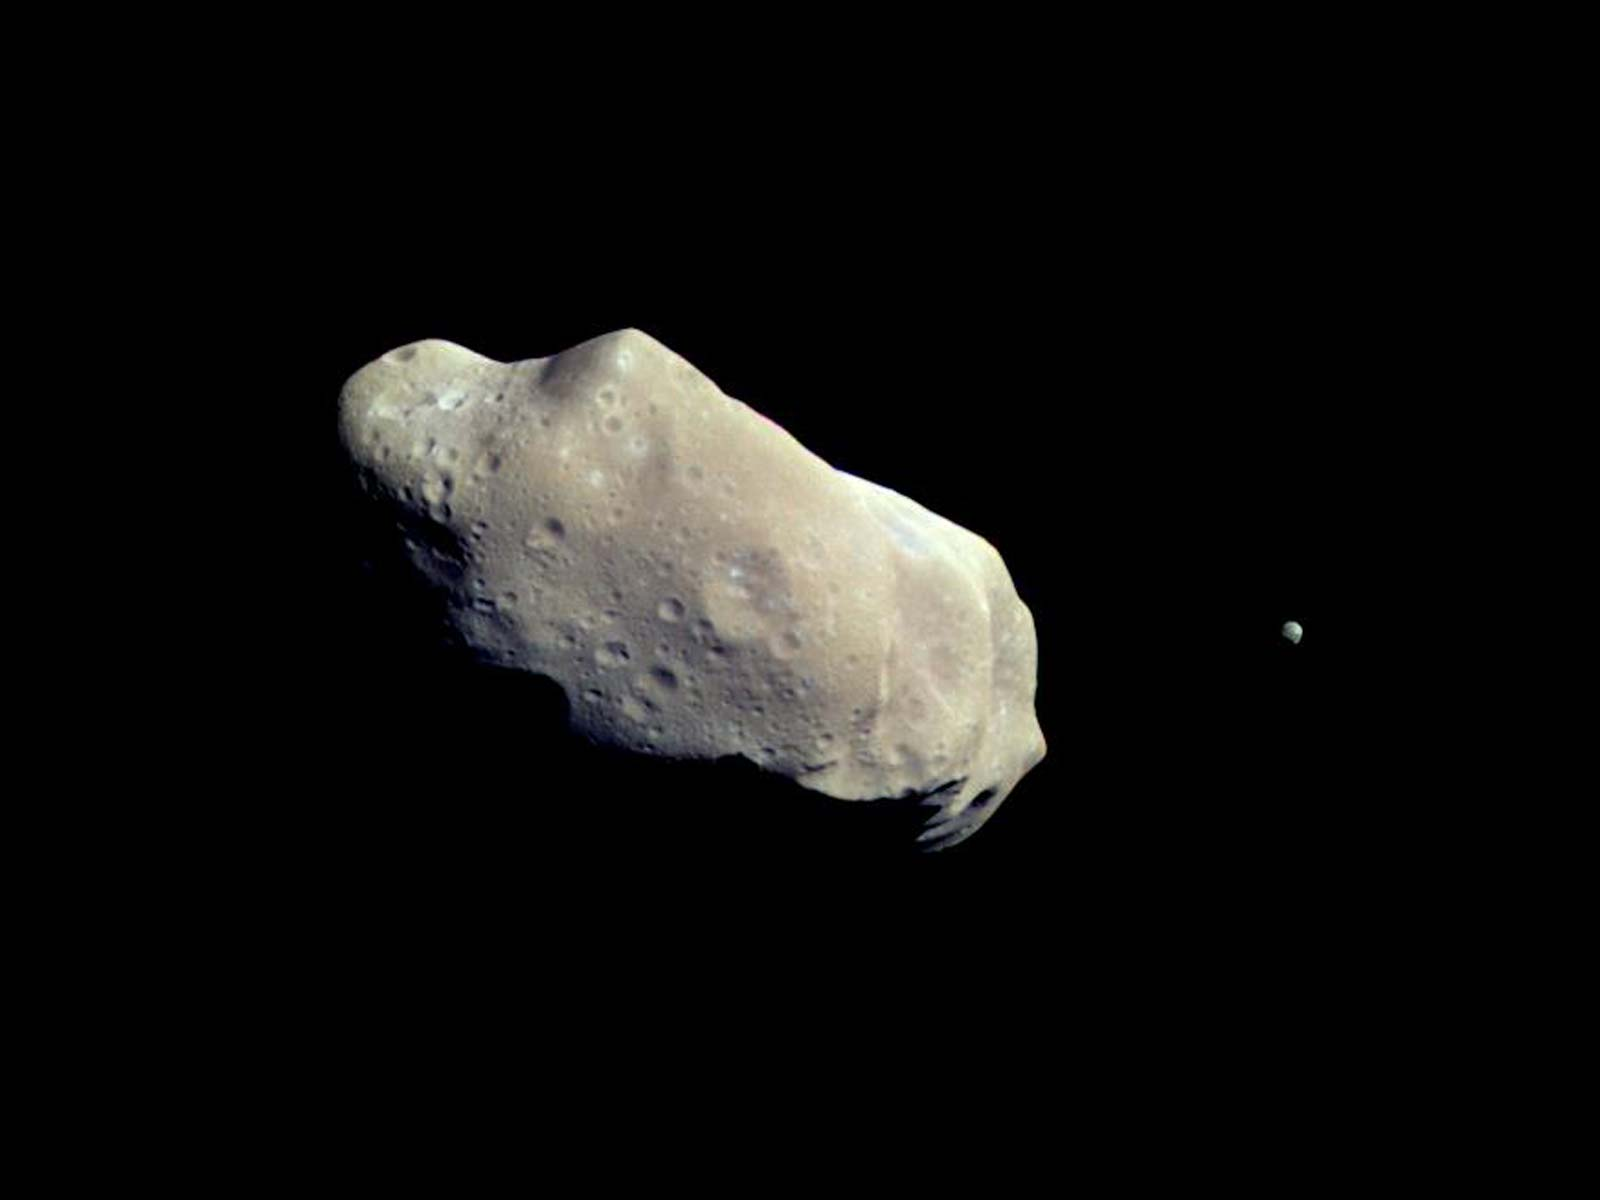 An Asteroid and Its Moon | Space Wallpaper